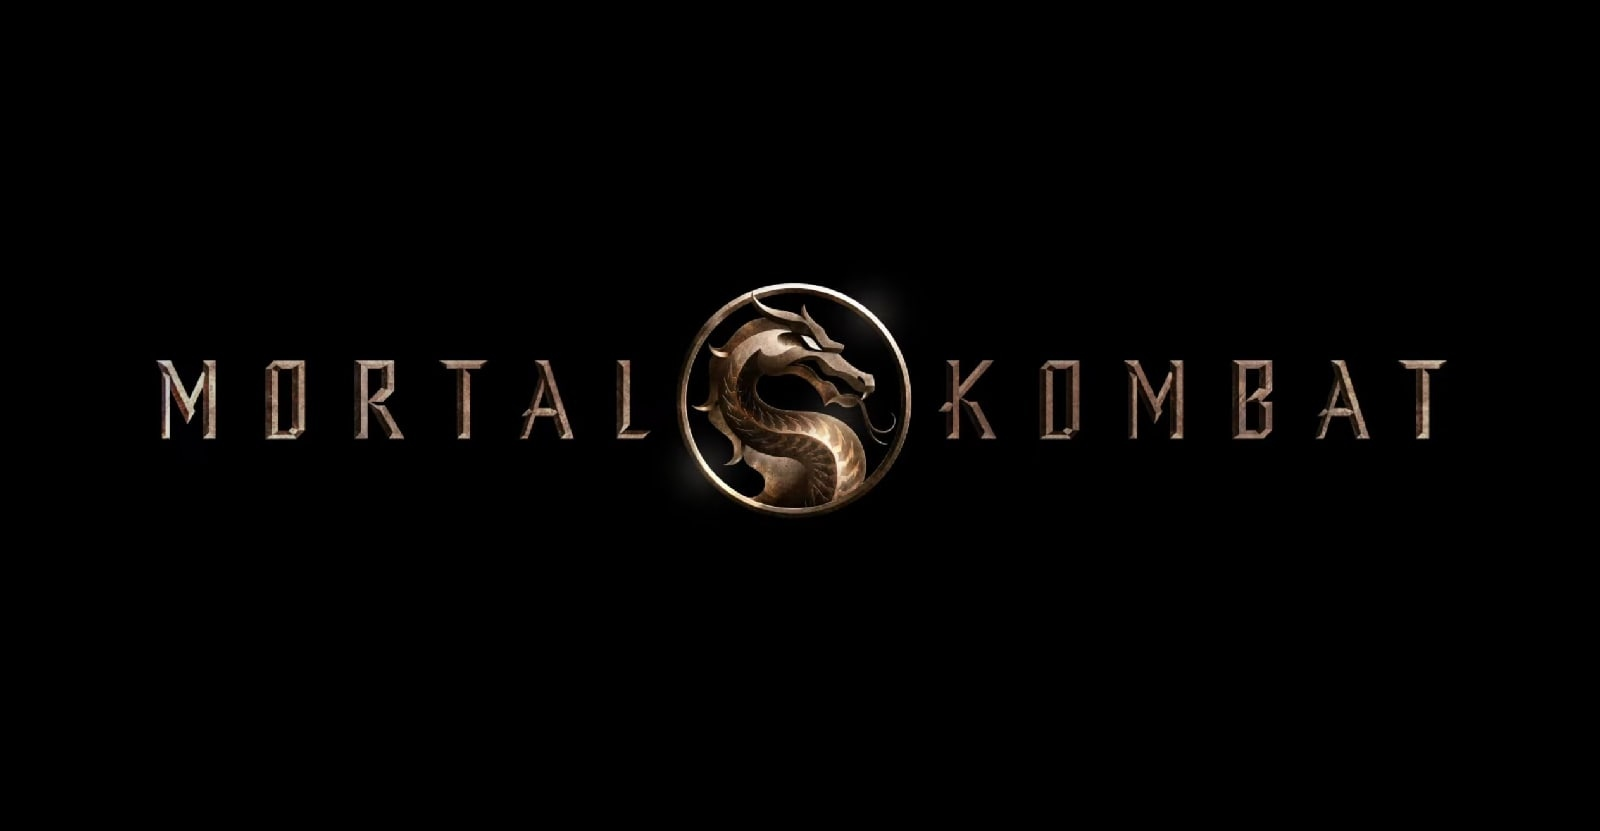 'Mortal Kombat' - landscape artwork